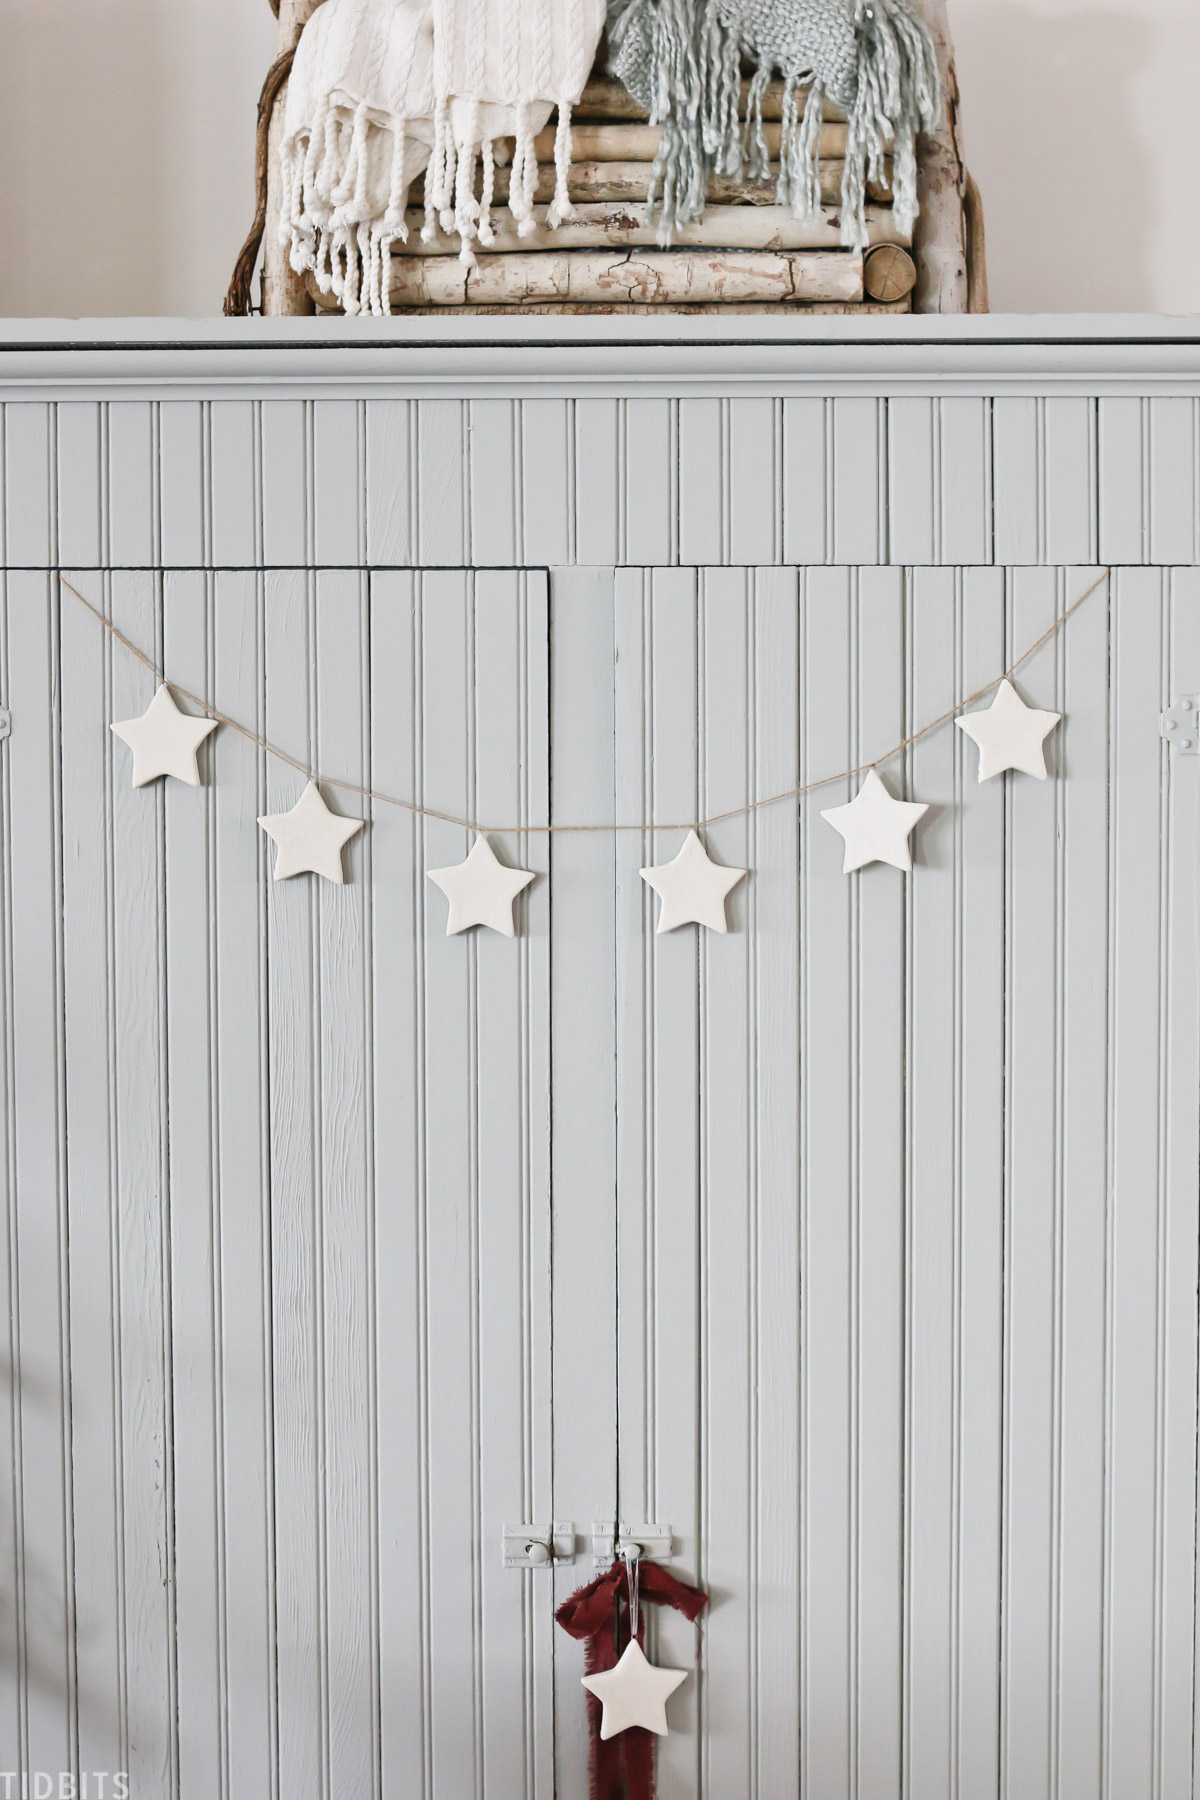 ceramic Christmas star ornaments hanging on cabinet in living room with other holiday decor